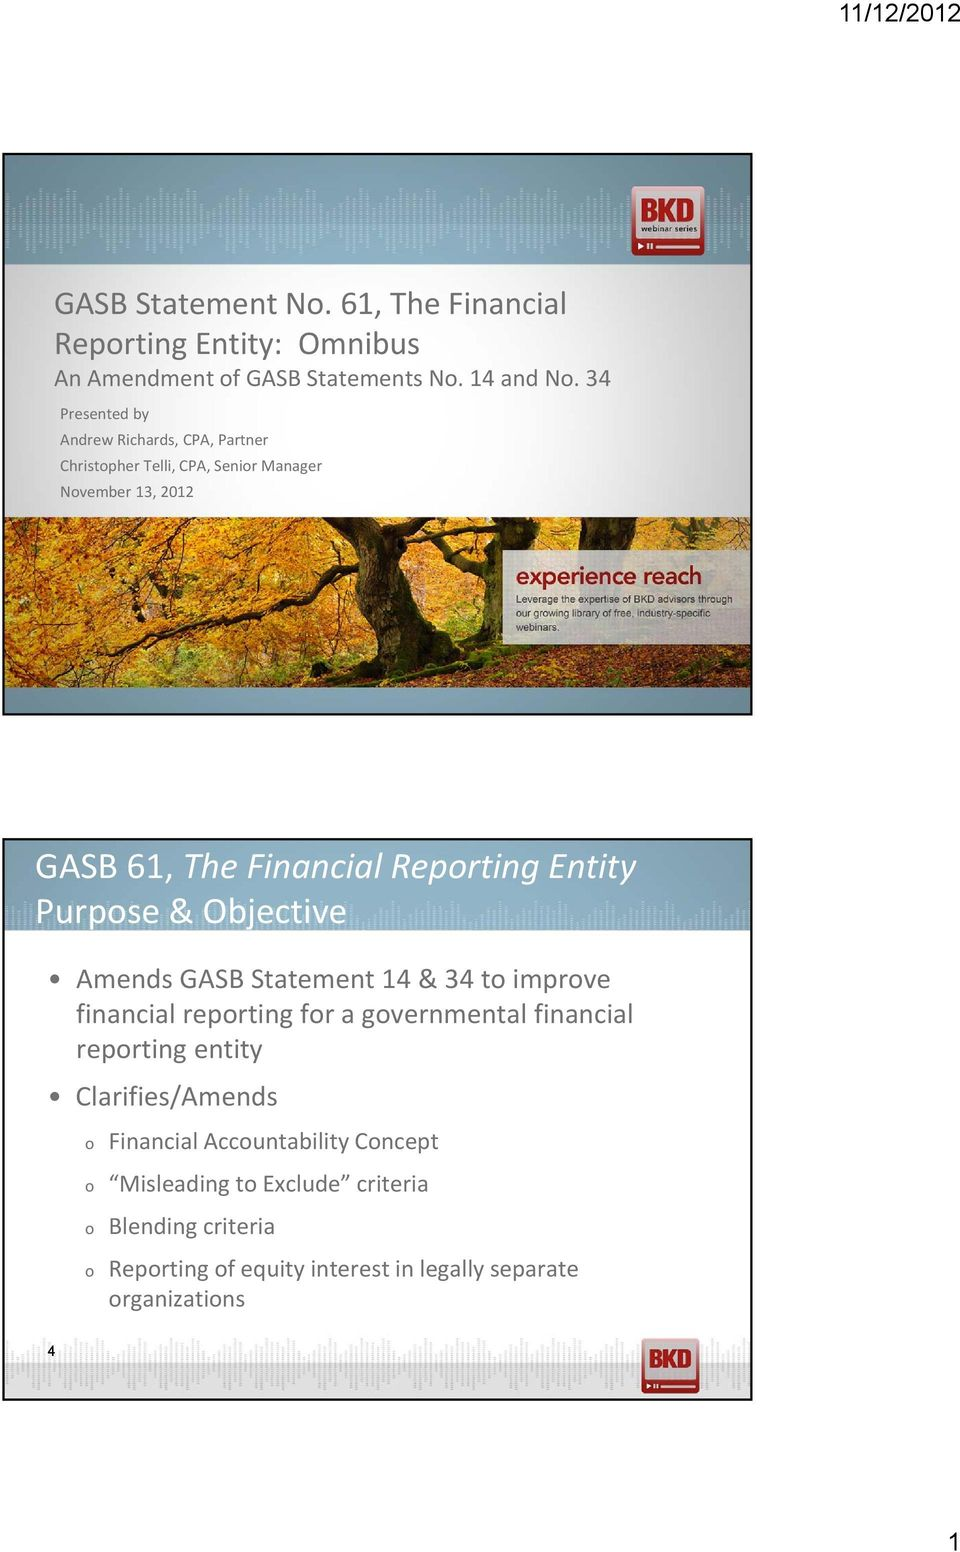 Amends GASB Statement 14 & 34 t imprve financial reprting fr a gvernmental financial reprting entity Clarifies/Amends